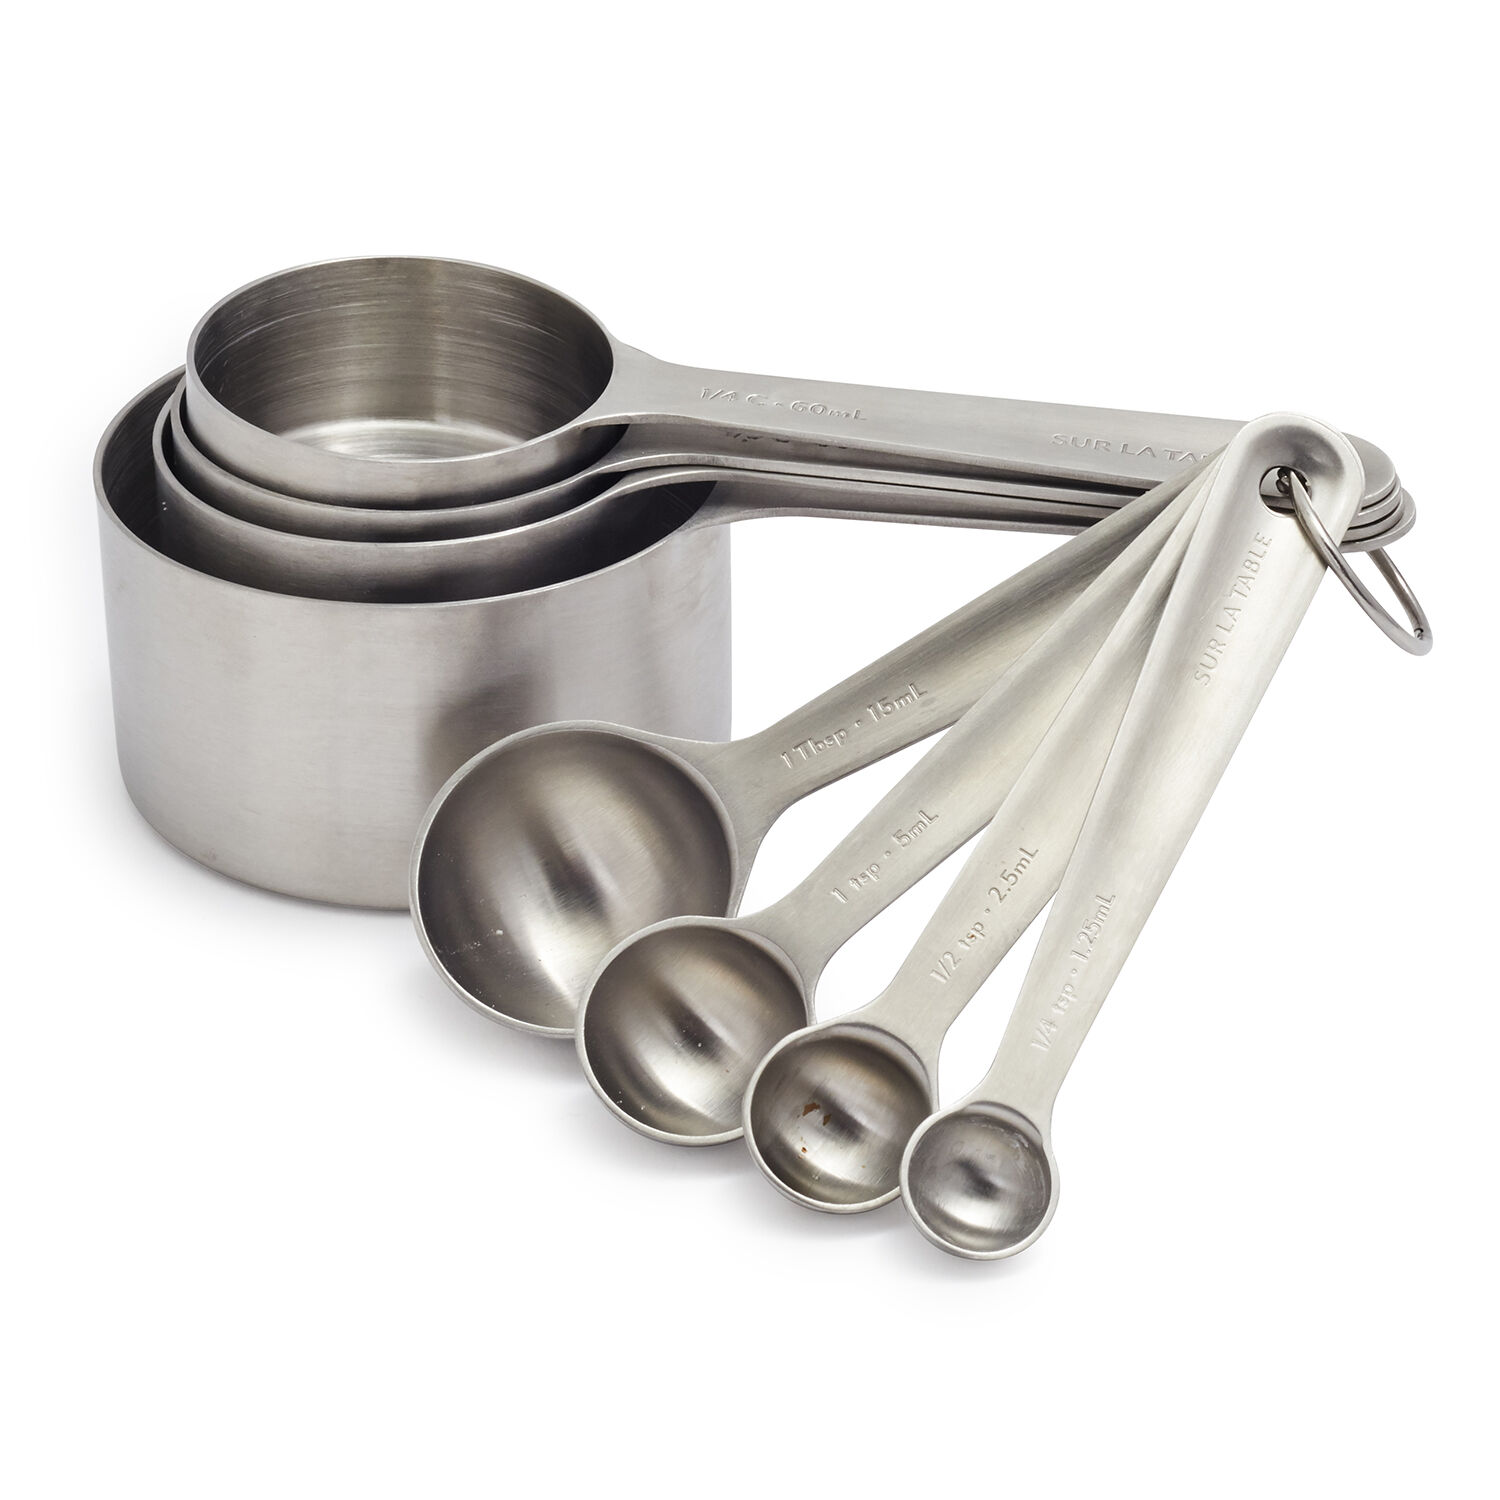 4 MEASURING CUPS /& 4 SPOONS STAINLESS STEEL FREE SHIPPING USA ONLY